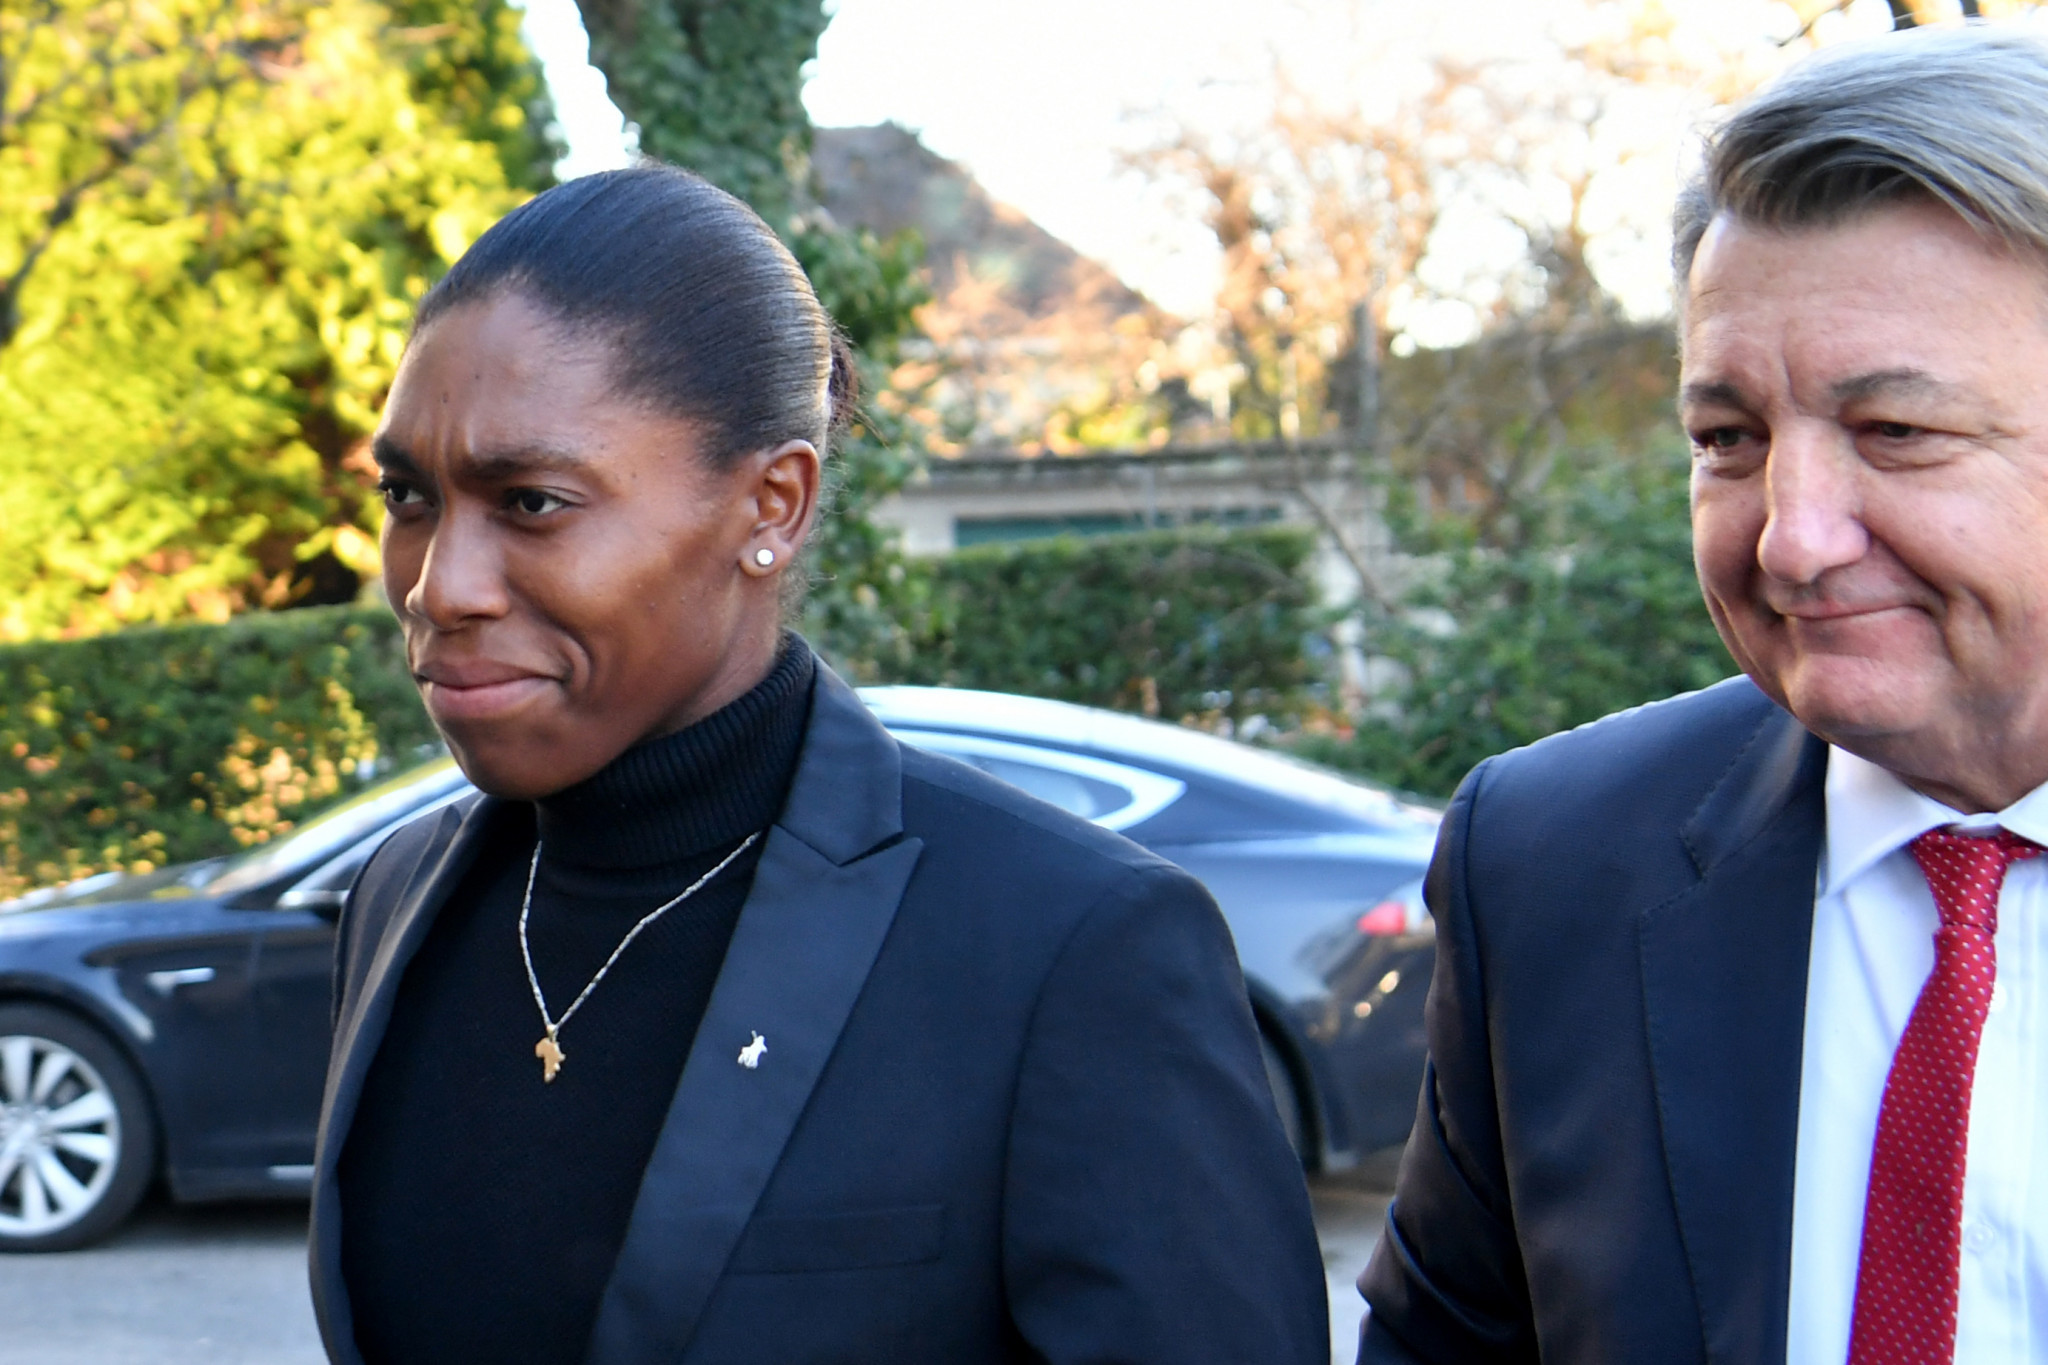 The Court of Arbitration for Sport has said a decision on the high-profile Caster Semenya case will be announced on or before March 26 ©Getty Images